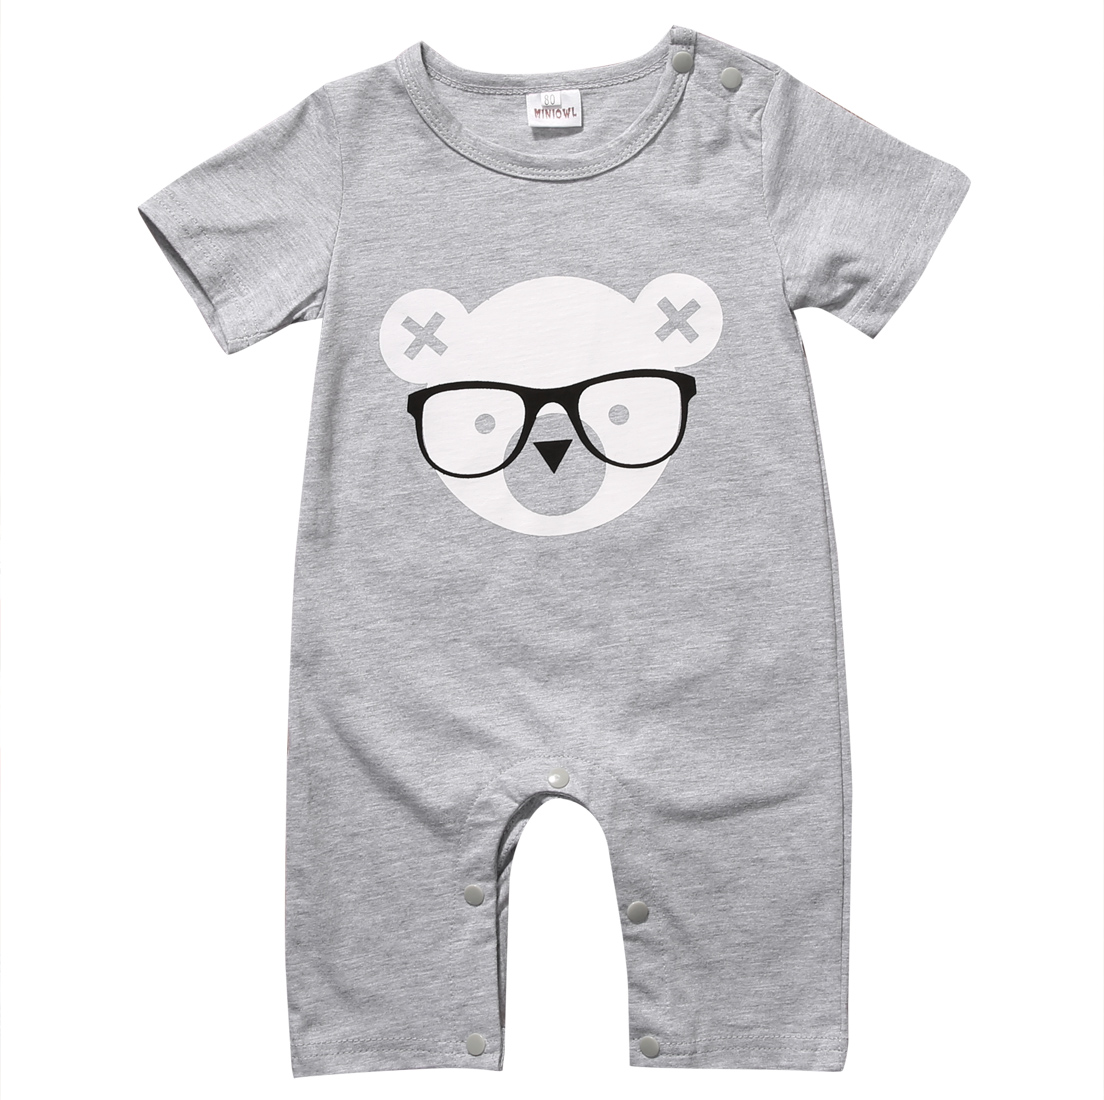 Cute Infant Newborn Baby Boys Girls Bear Romper Jumpsuit Outfit Clothes newborn toddler infant baby girls floral clothing zipper cute romper jumpsuit long sleeve outfit clothes